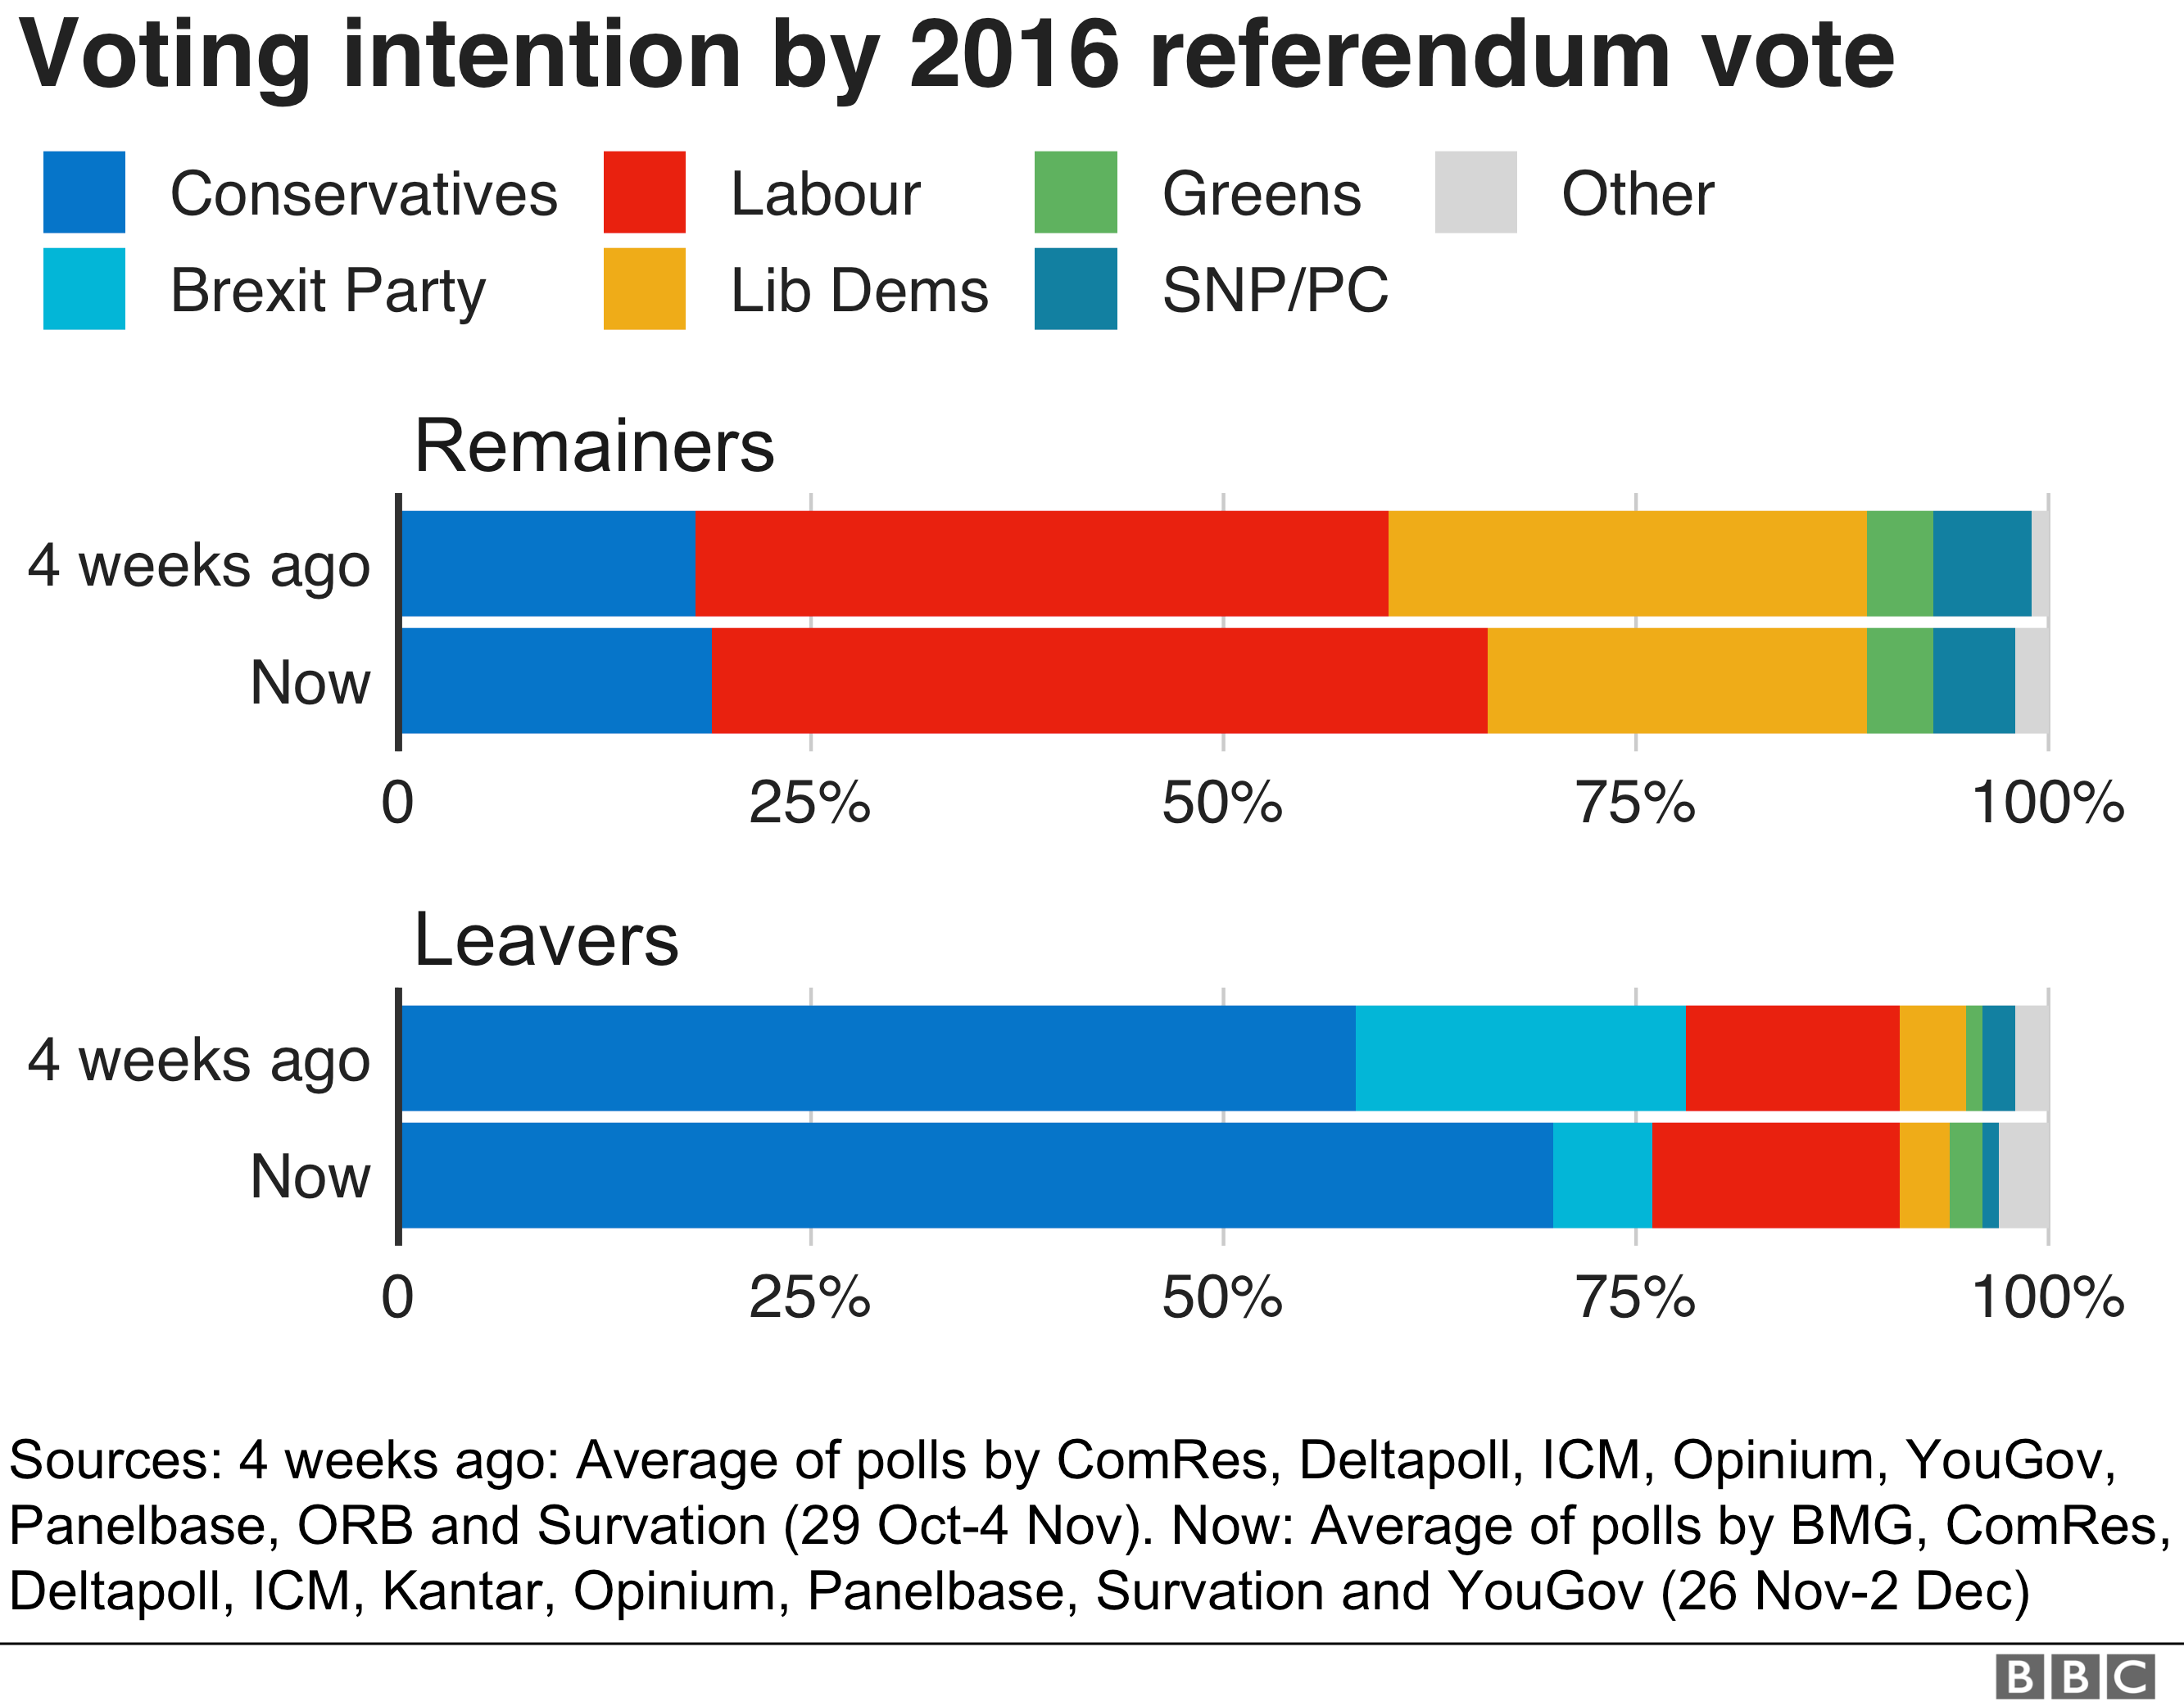 Bar charts of voting intention by 2016 referendum vote